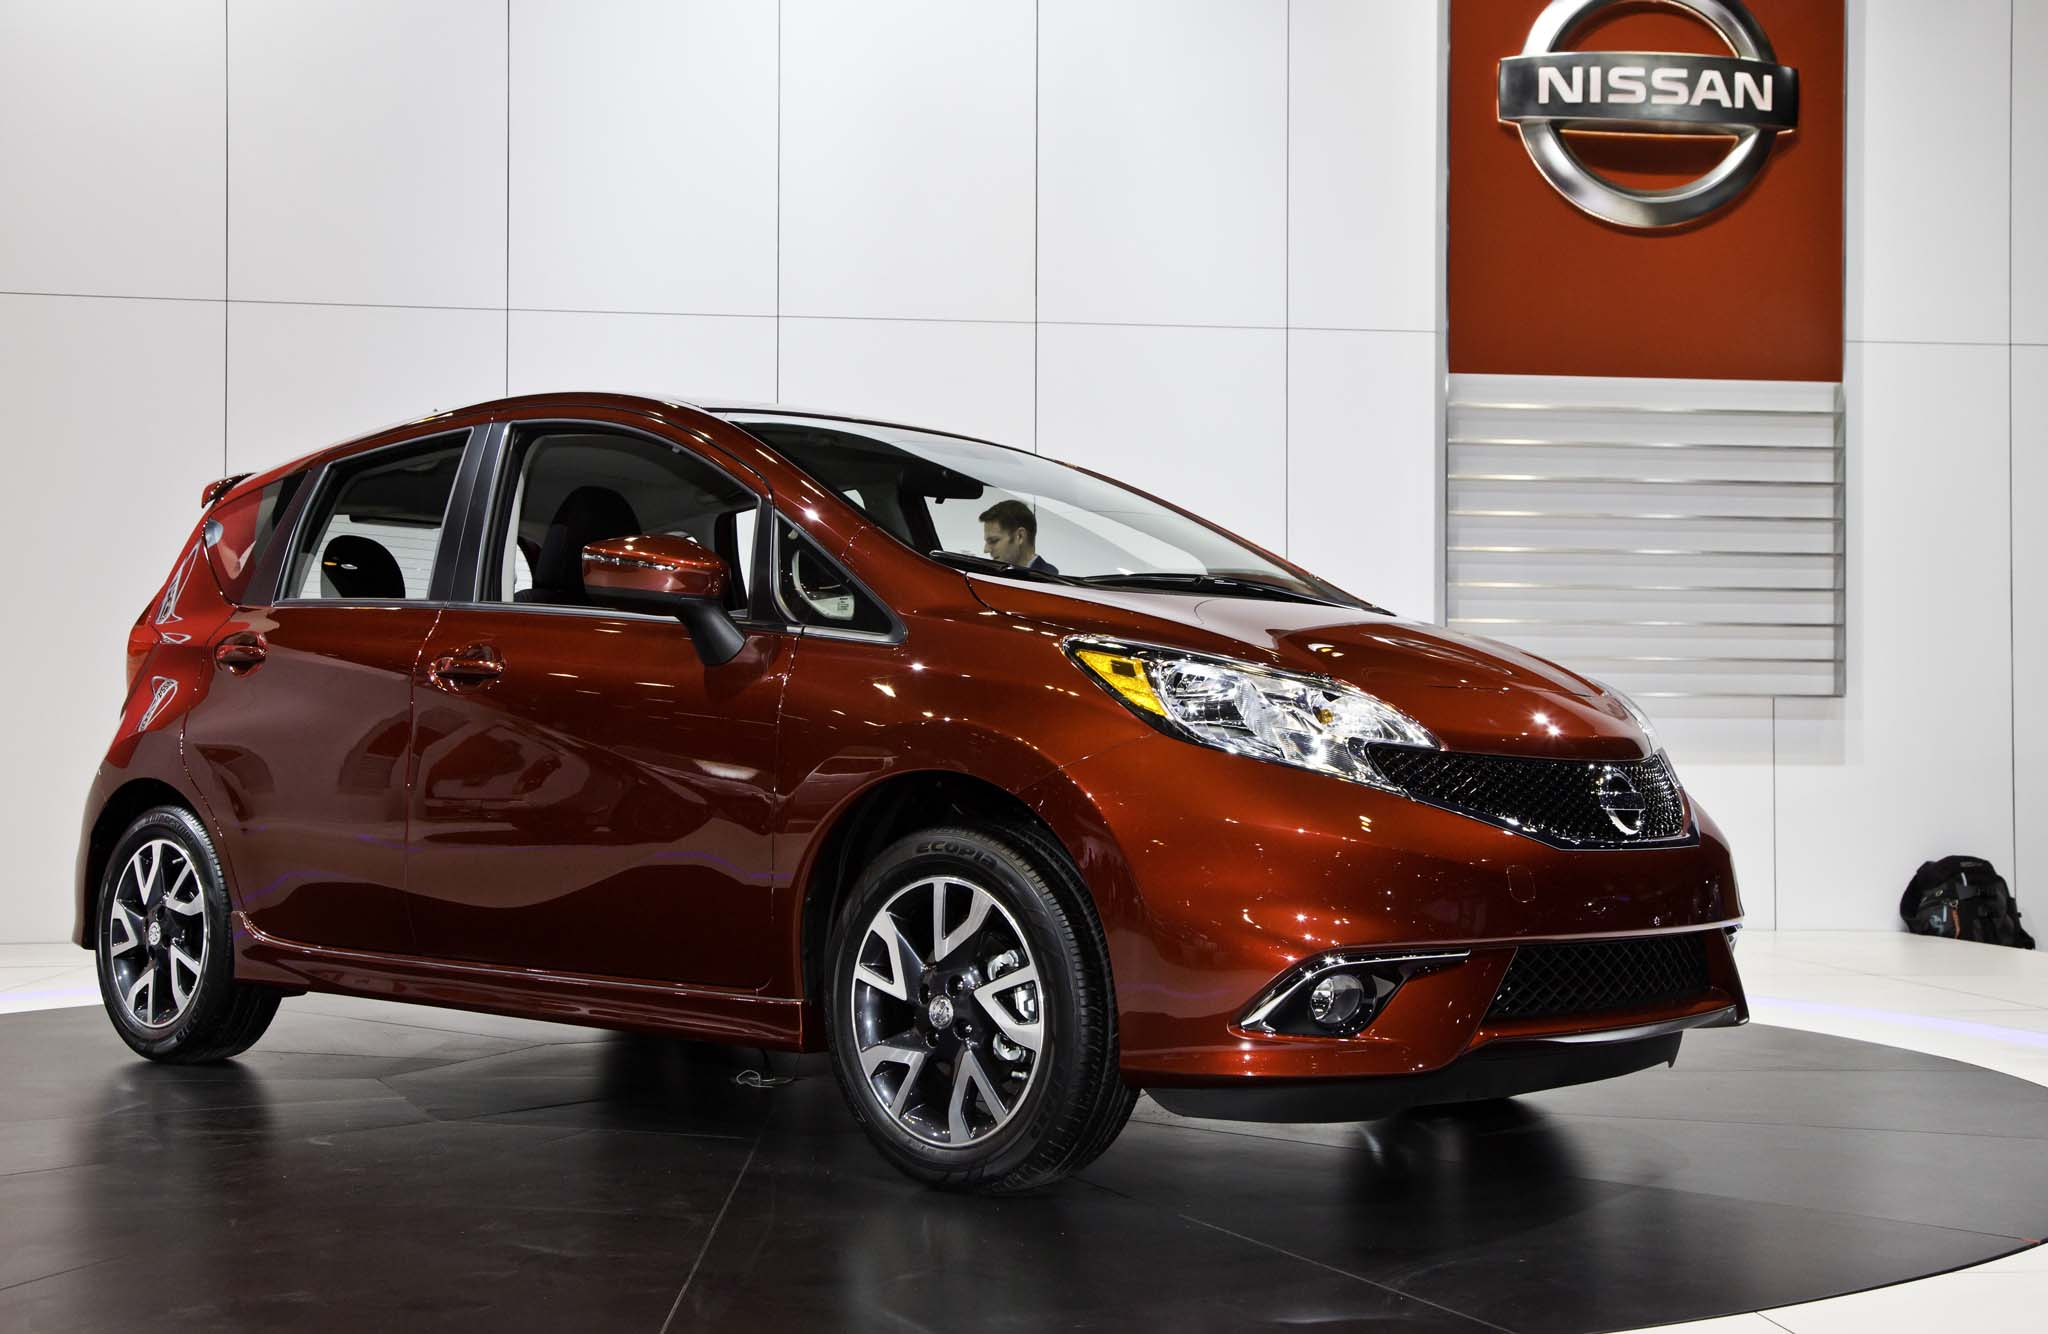 2015 nissan versa note starts at 14 990 sr from 18 340 automobile. Black Bedroom Furniture Sets. Home Design Ideas